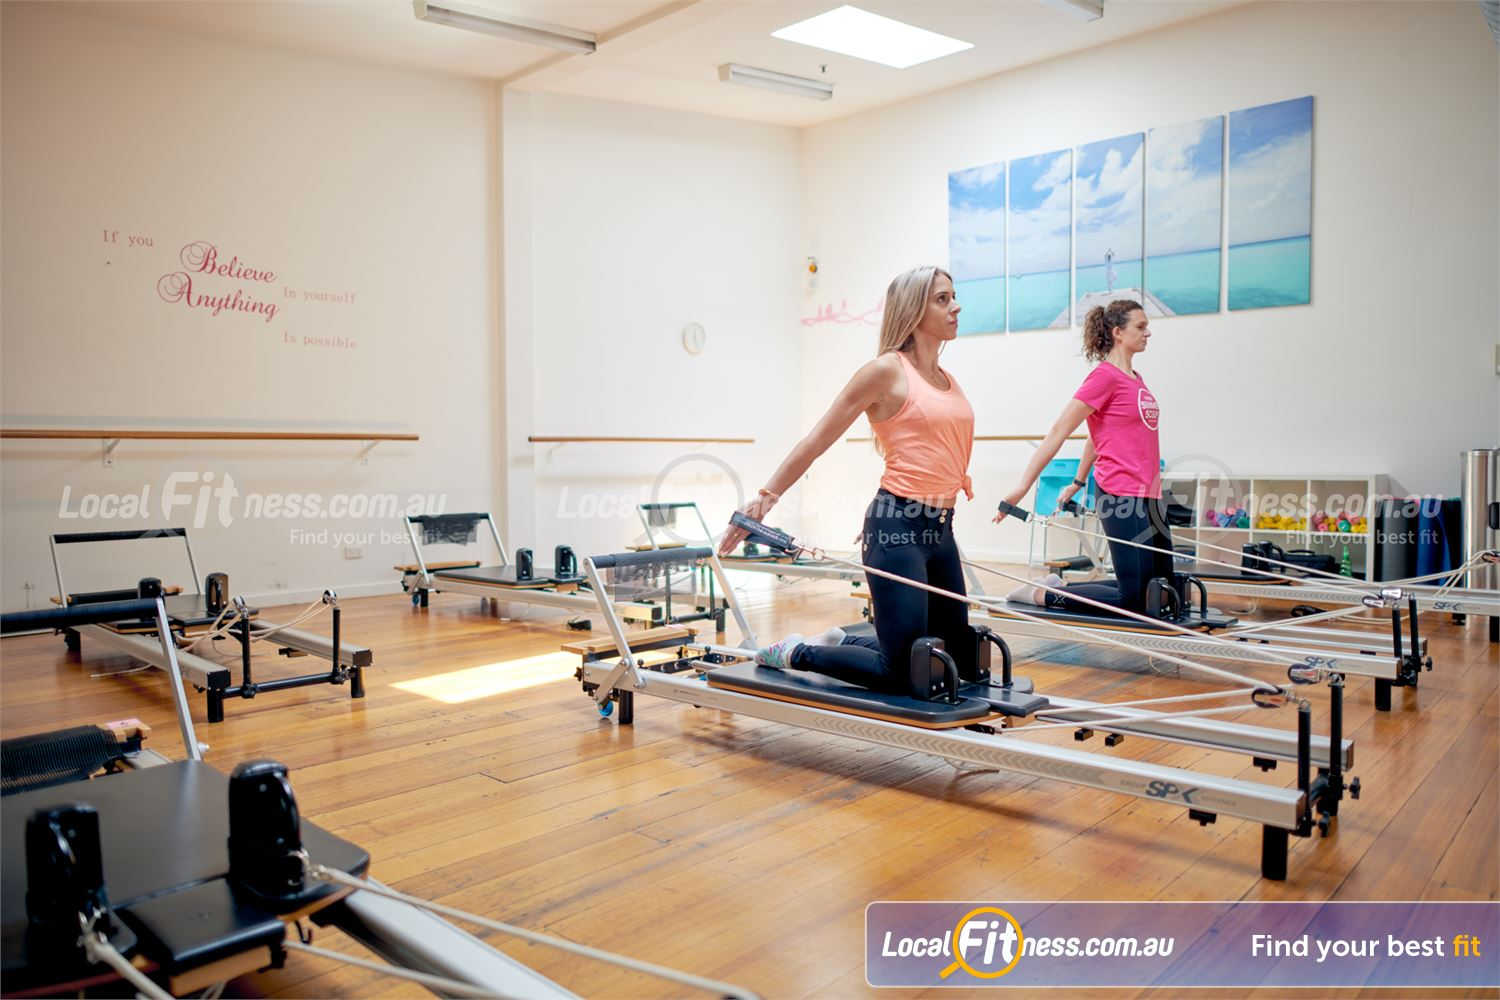 Fernwood Fitness Camberwell Our exclusive Camberwell Reformer Pilates studio.